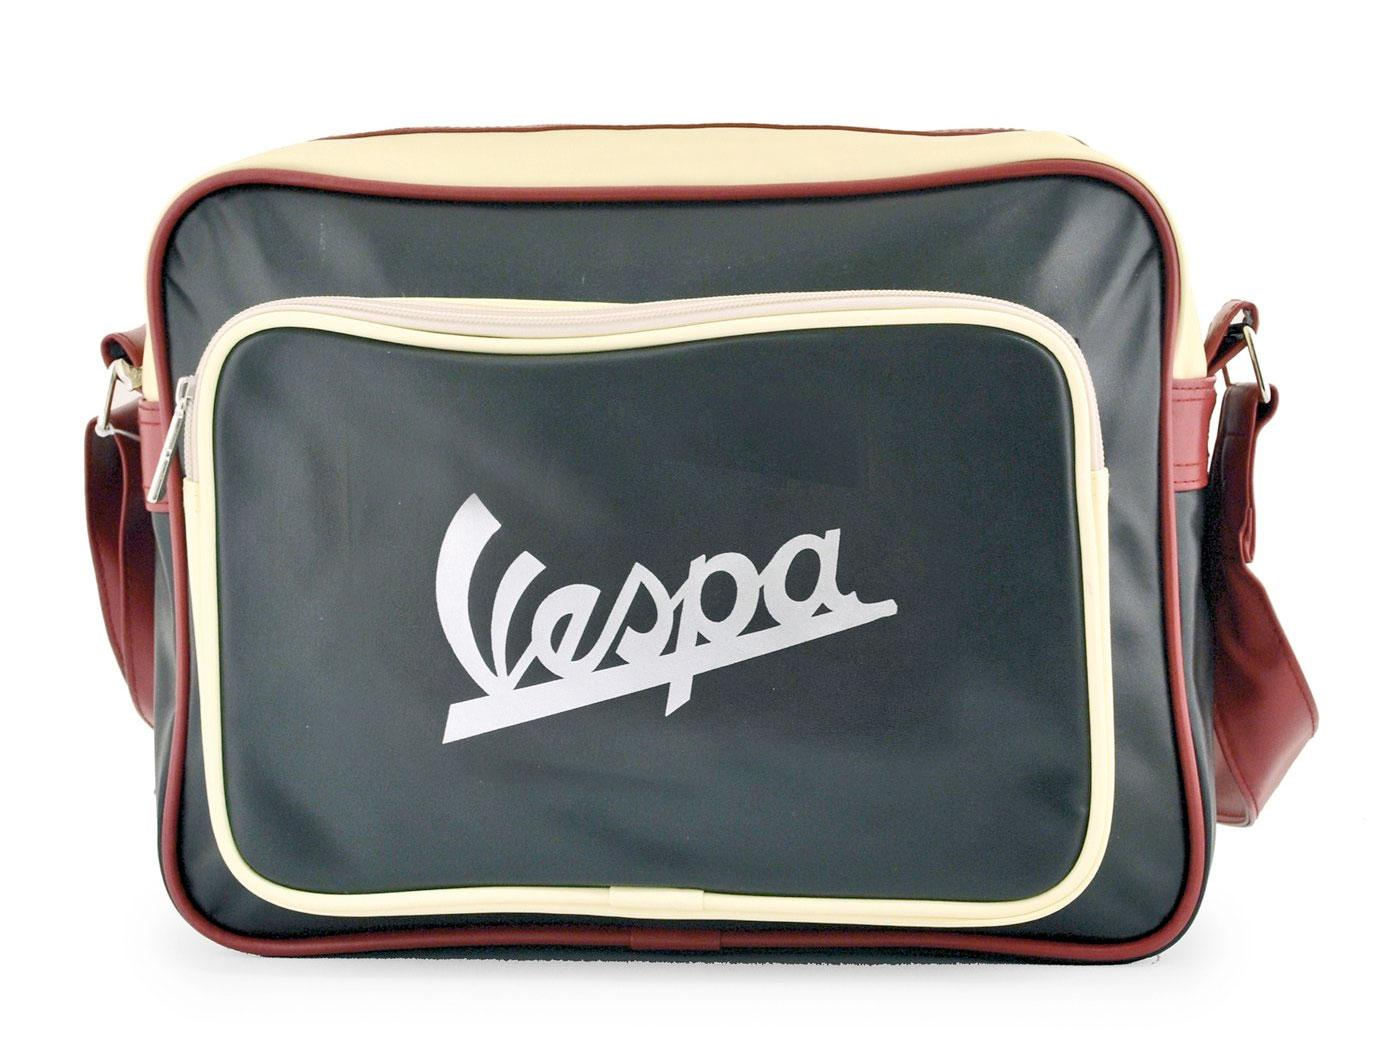 VESPA Retro Mod 60s Scooter Logo Shoulder Bag